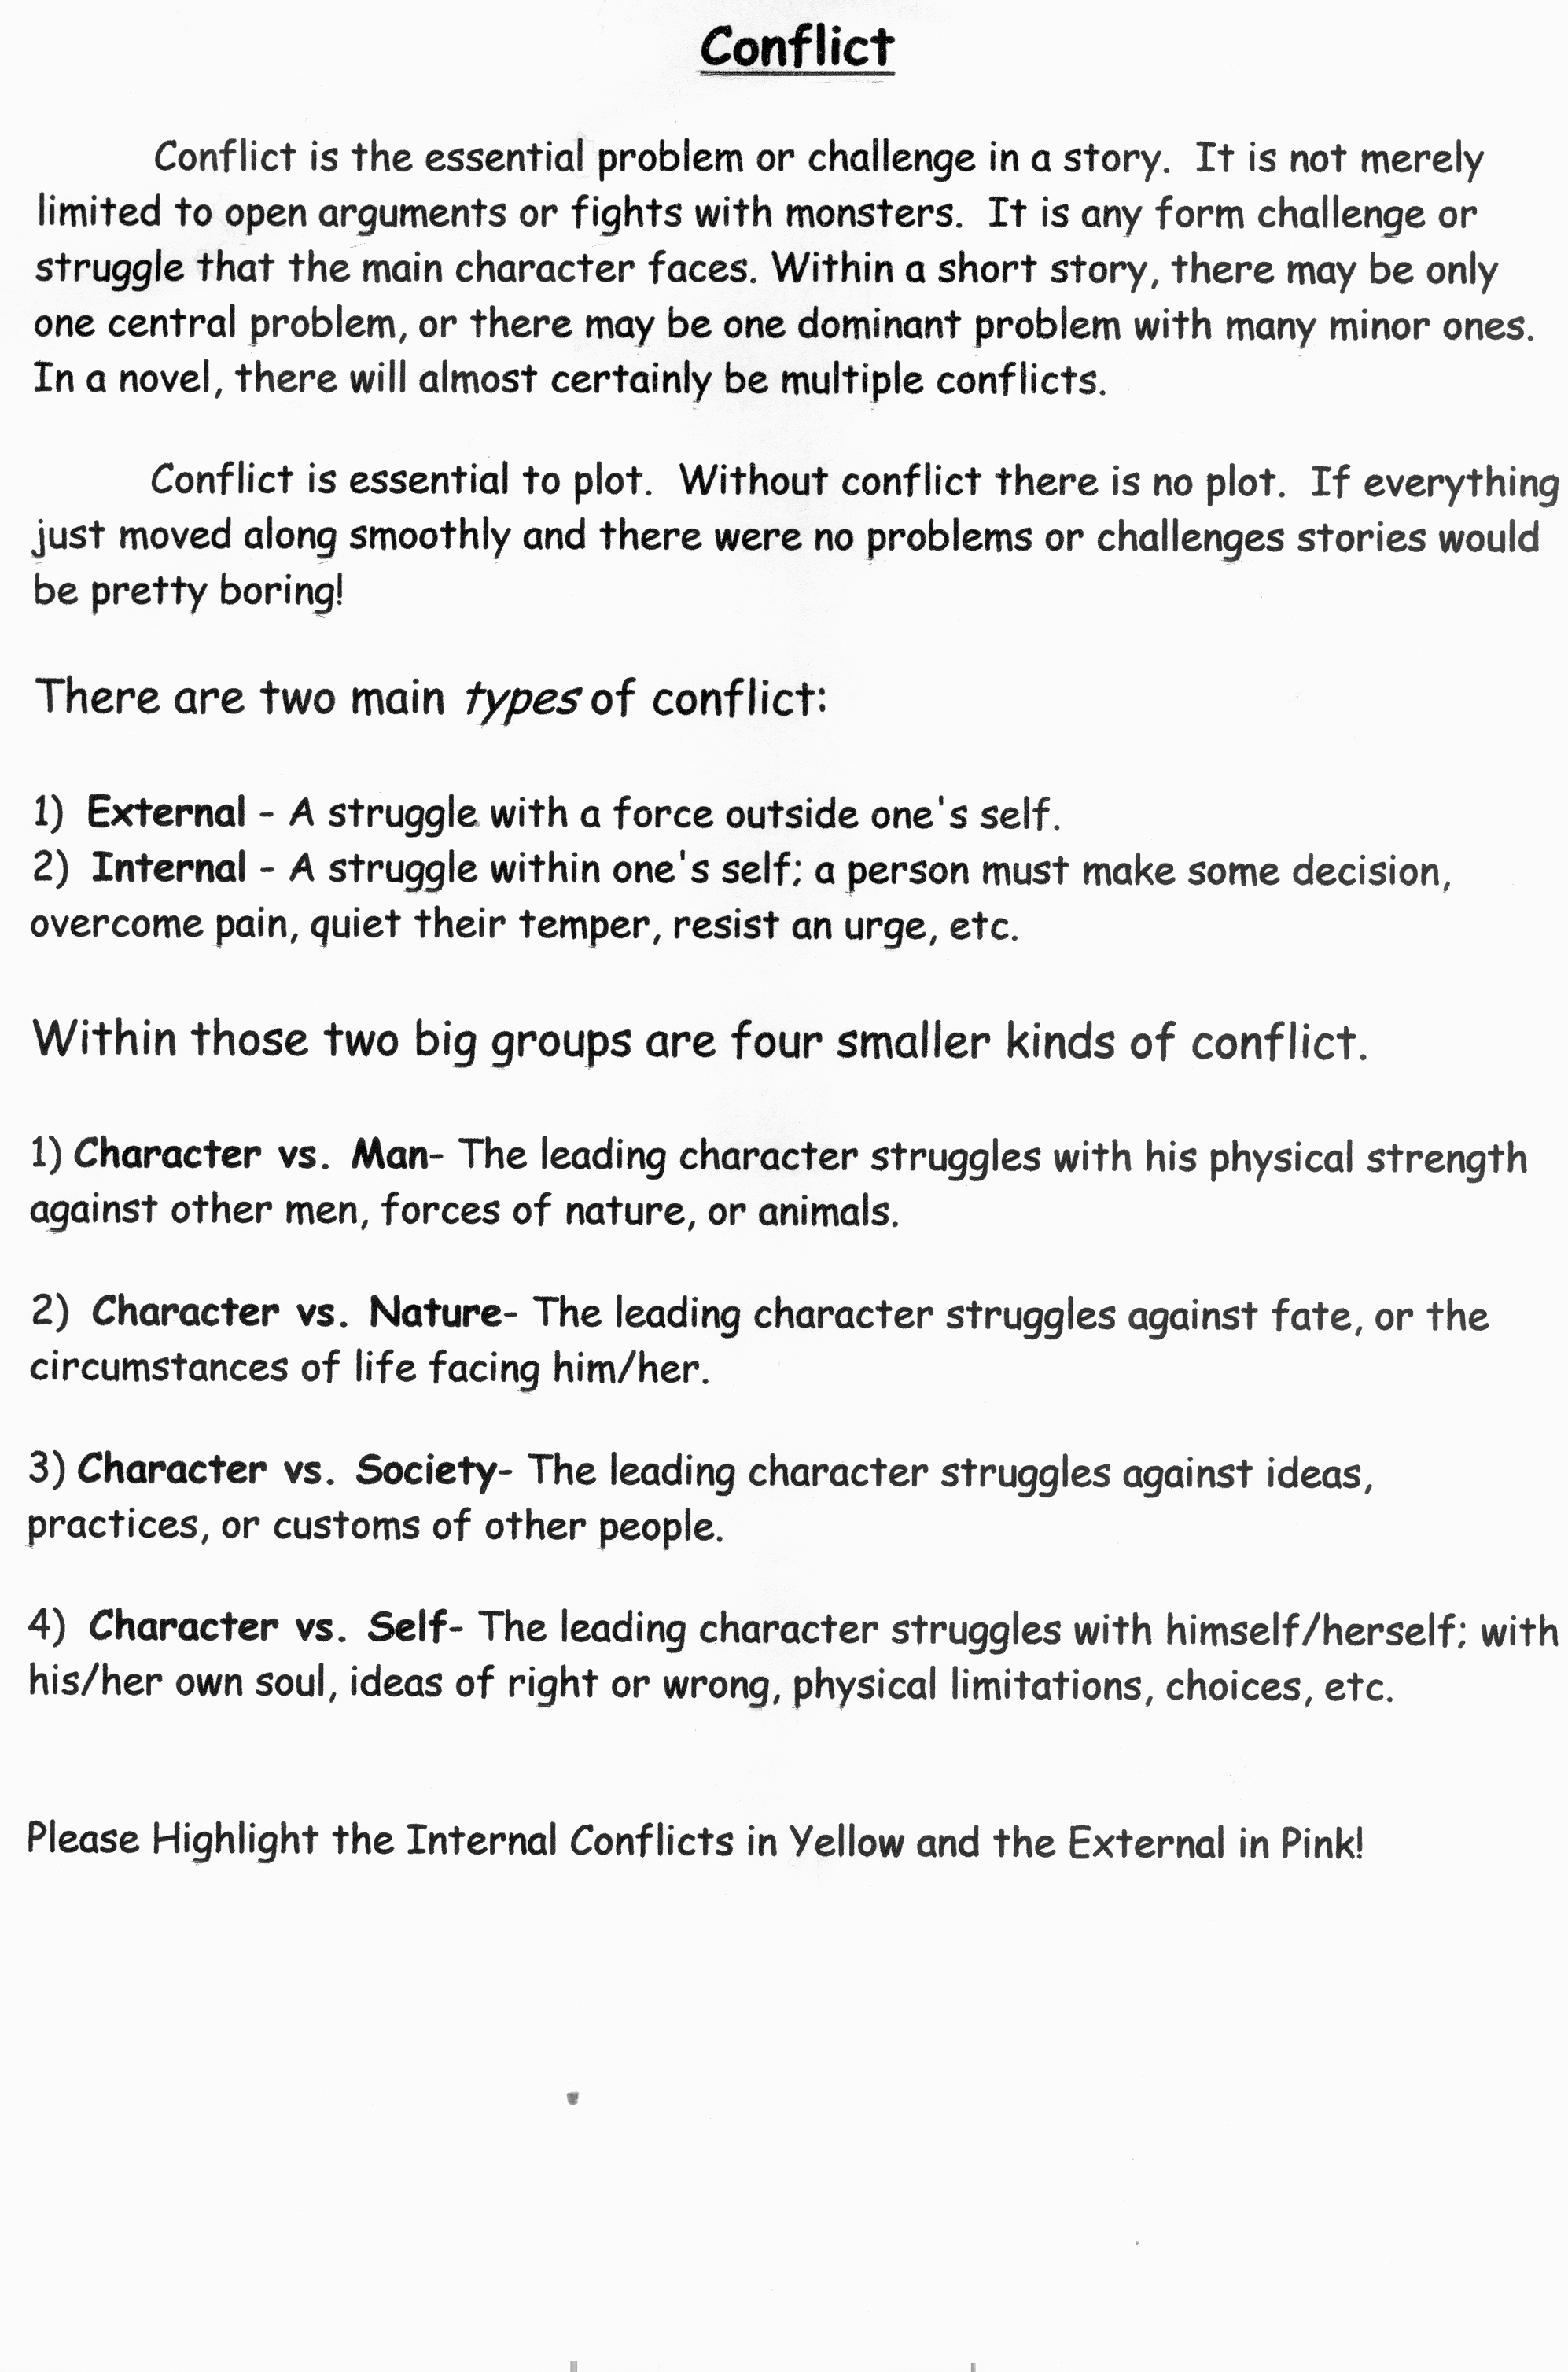 Worksheets Types Of Conflict Worksheet 6th grade lessons middle school language arts help internalexternal conflict